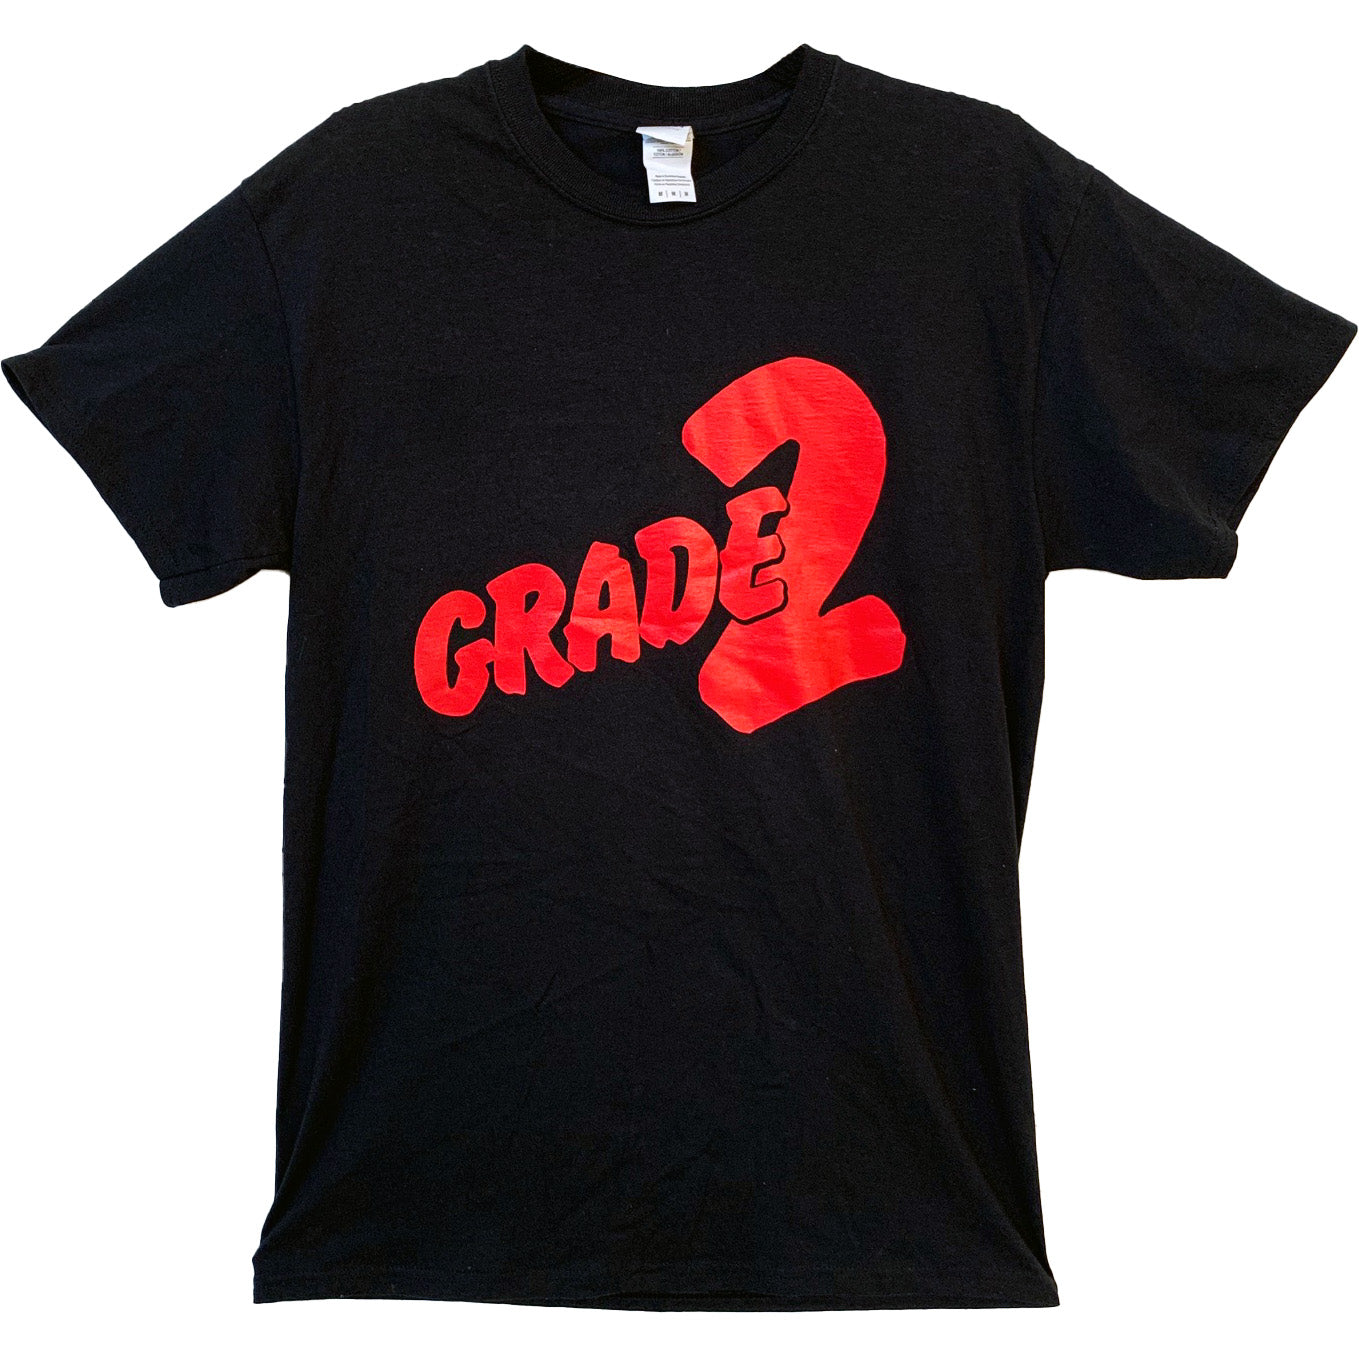 Grade 2 - Red Logo - Black - T-Shirt